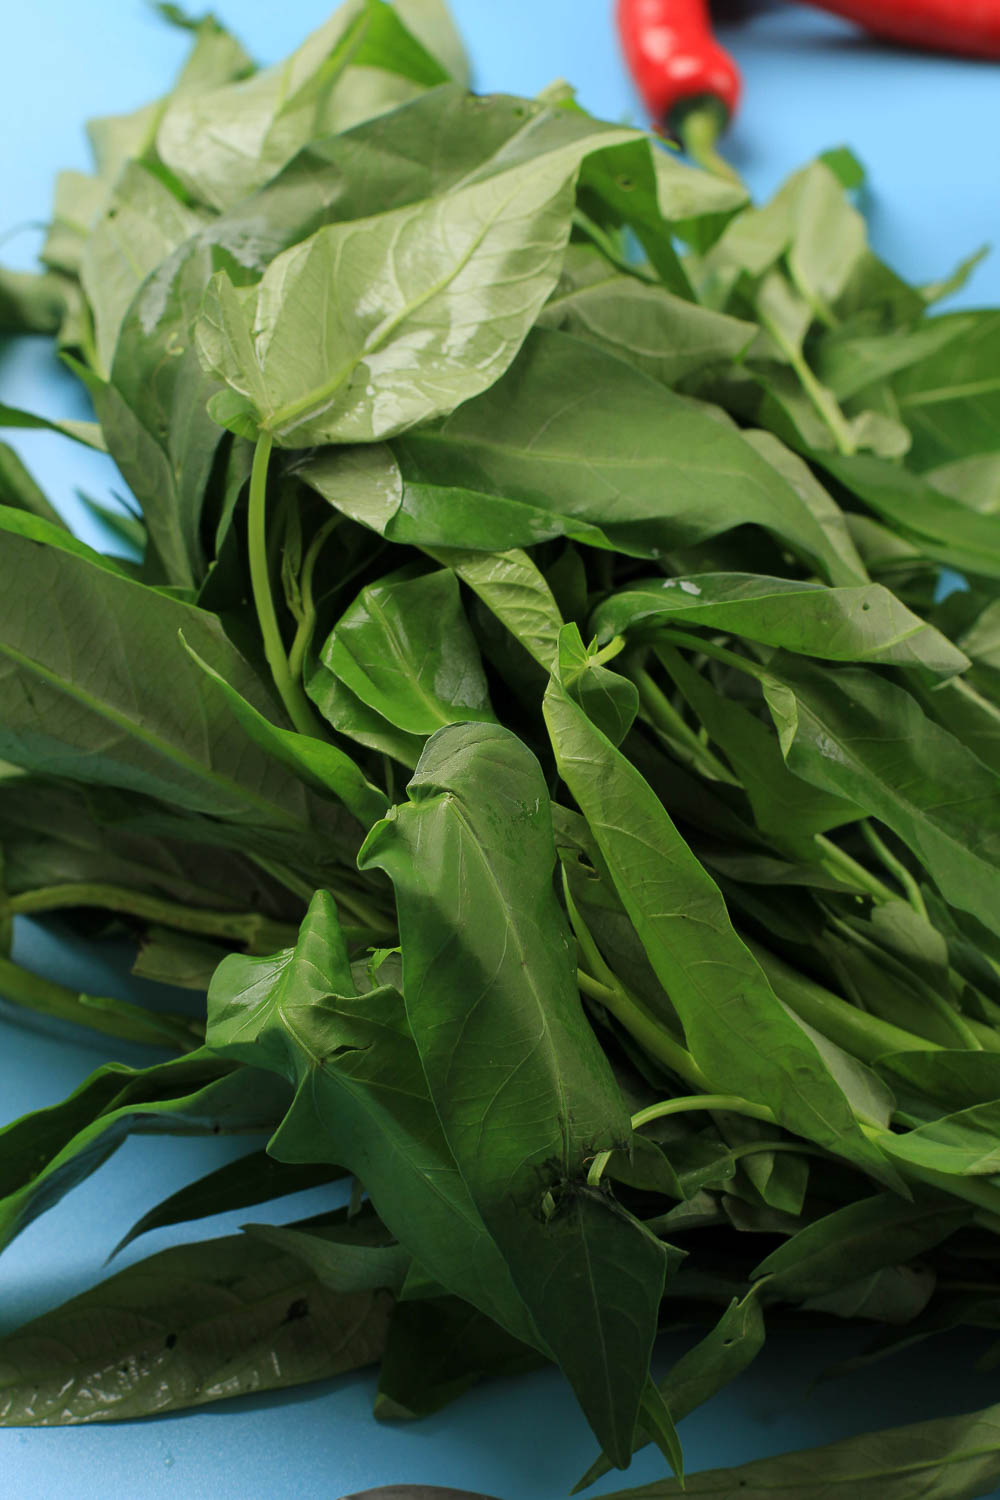 Water spinach, ong choy